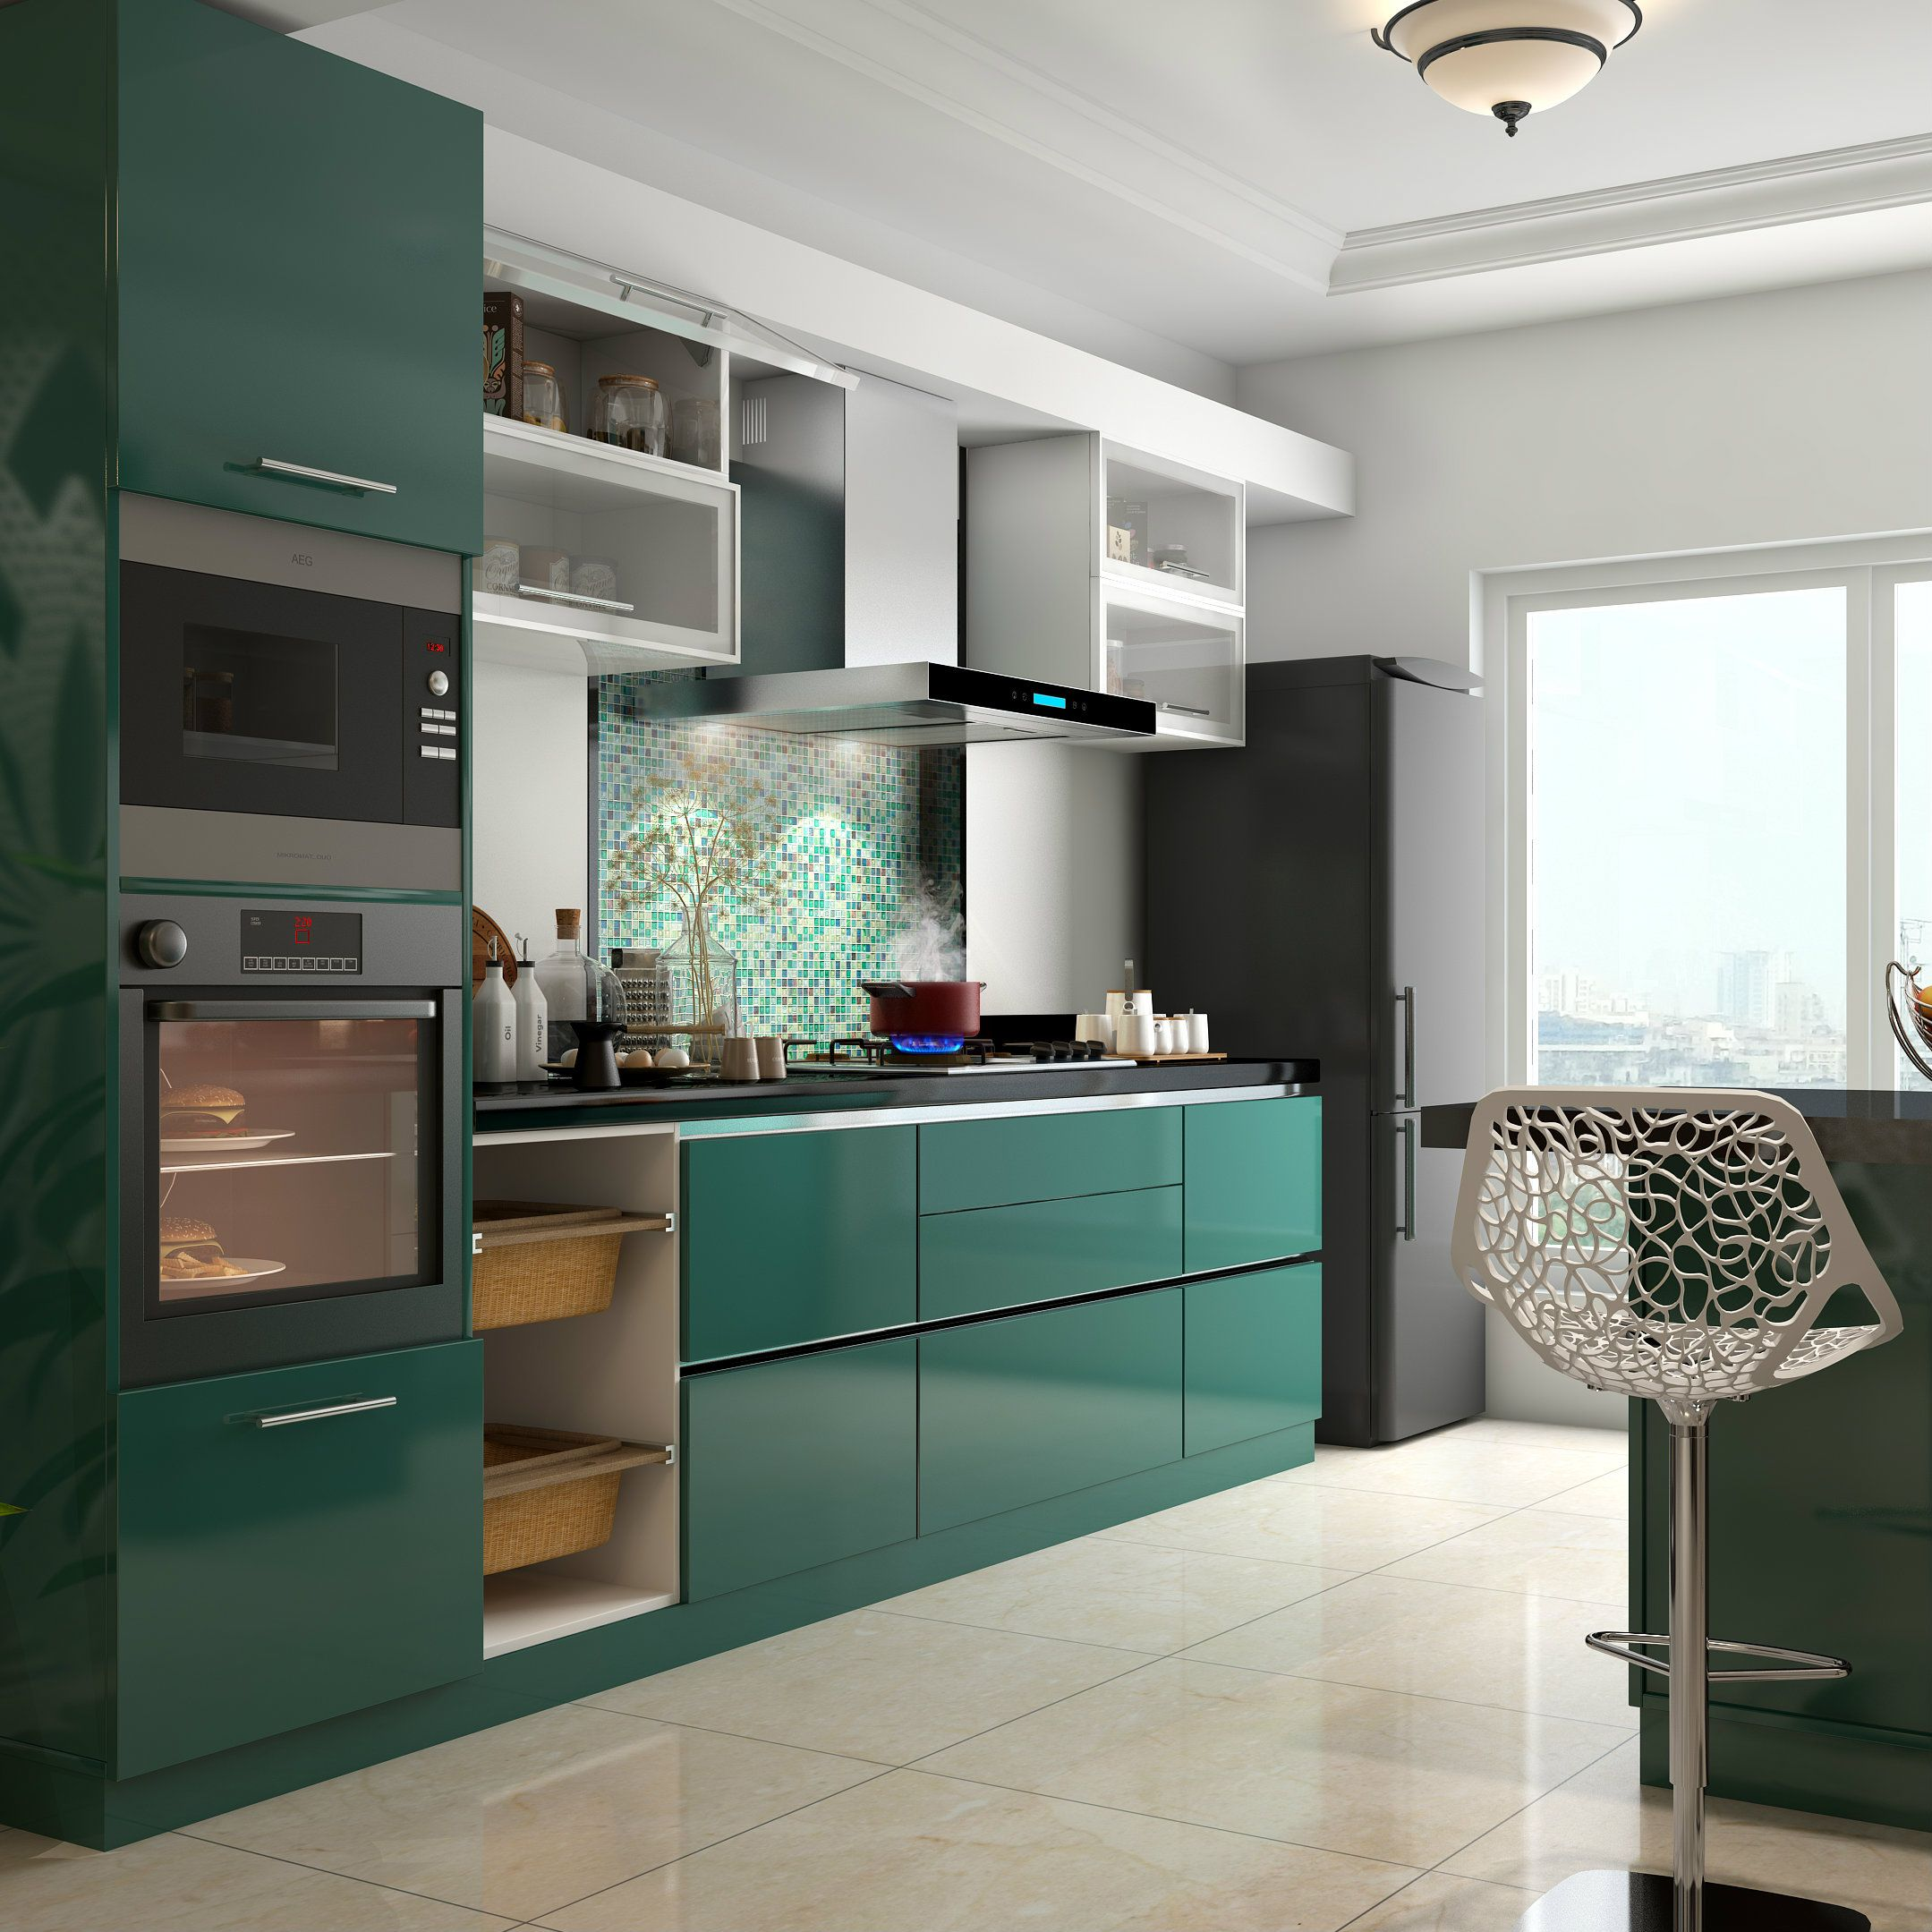 Glossy green infuse vitality to this kitchen